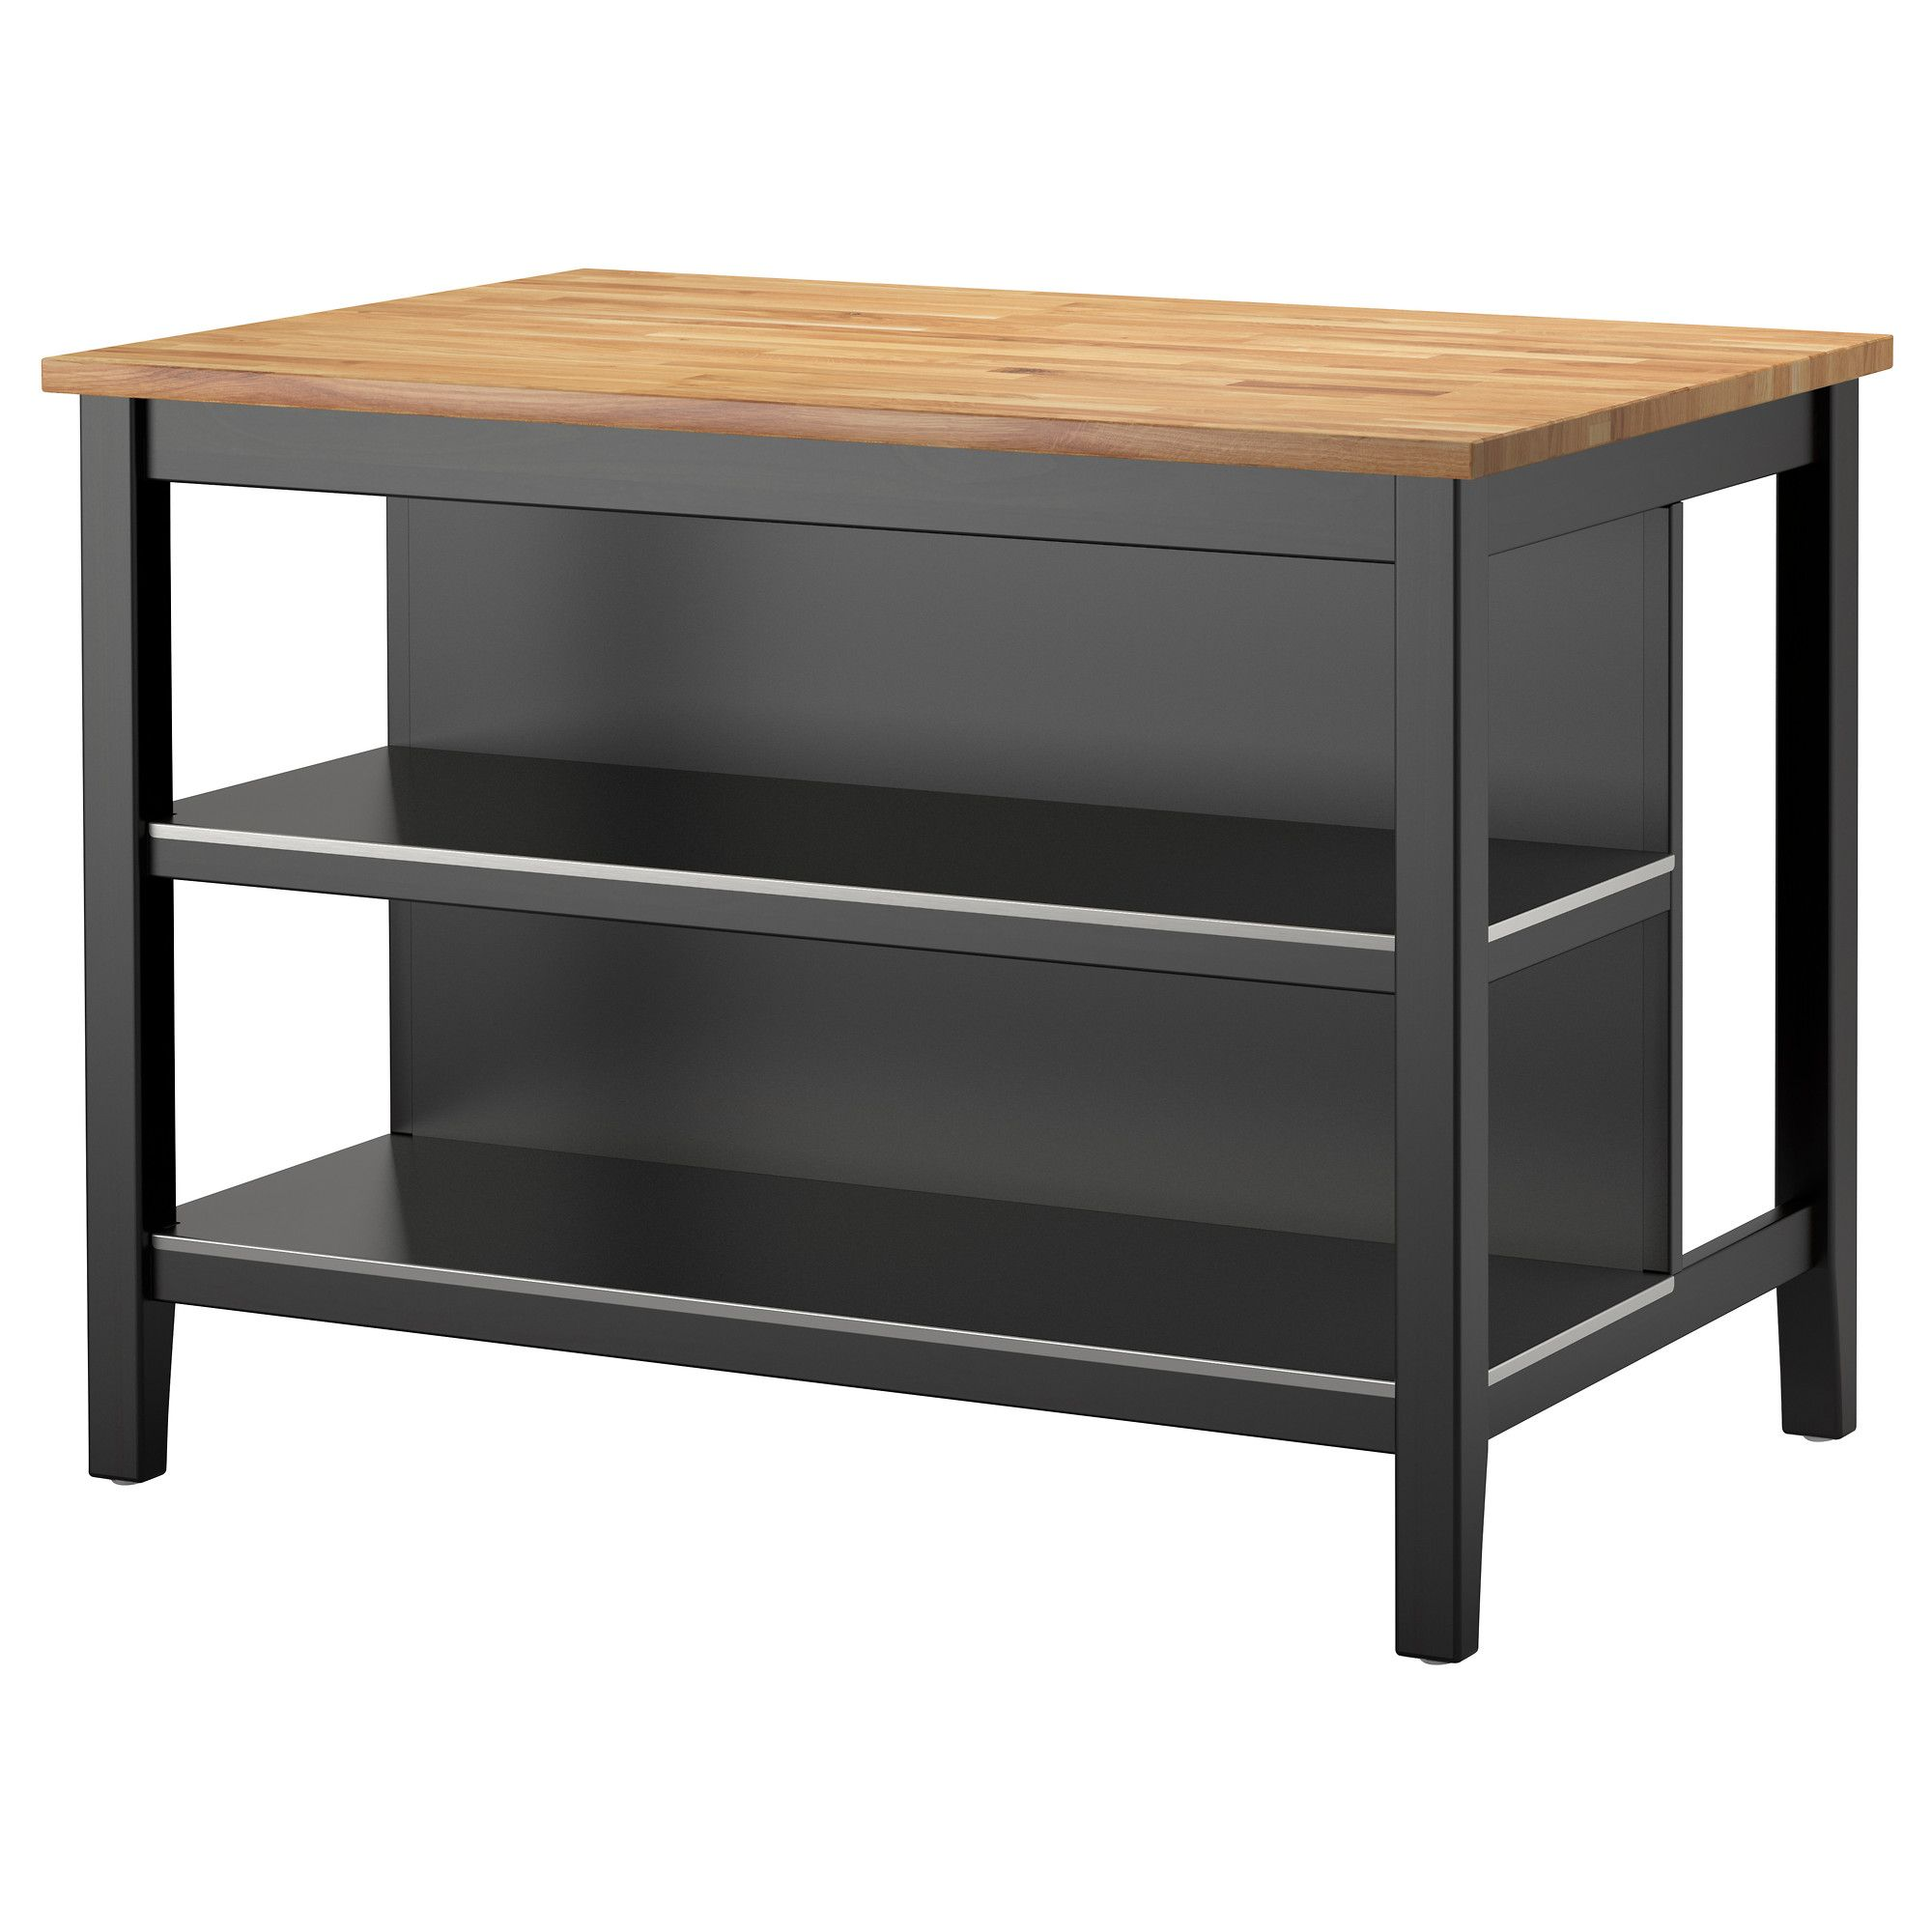 Ilot Cuisine Ikea Stenstorp Stenstorp Kitchen Island Ikea Cheap Version 109 North Main St